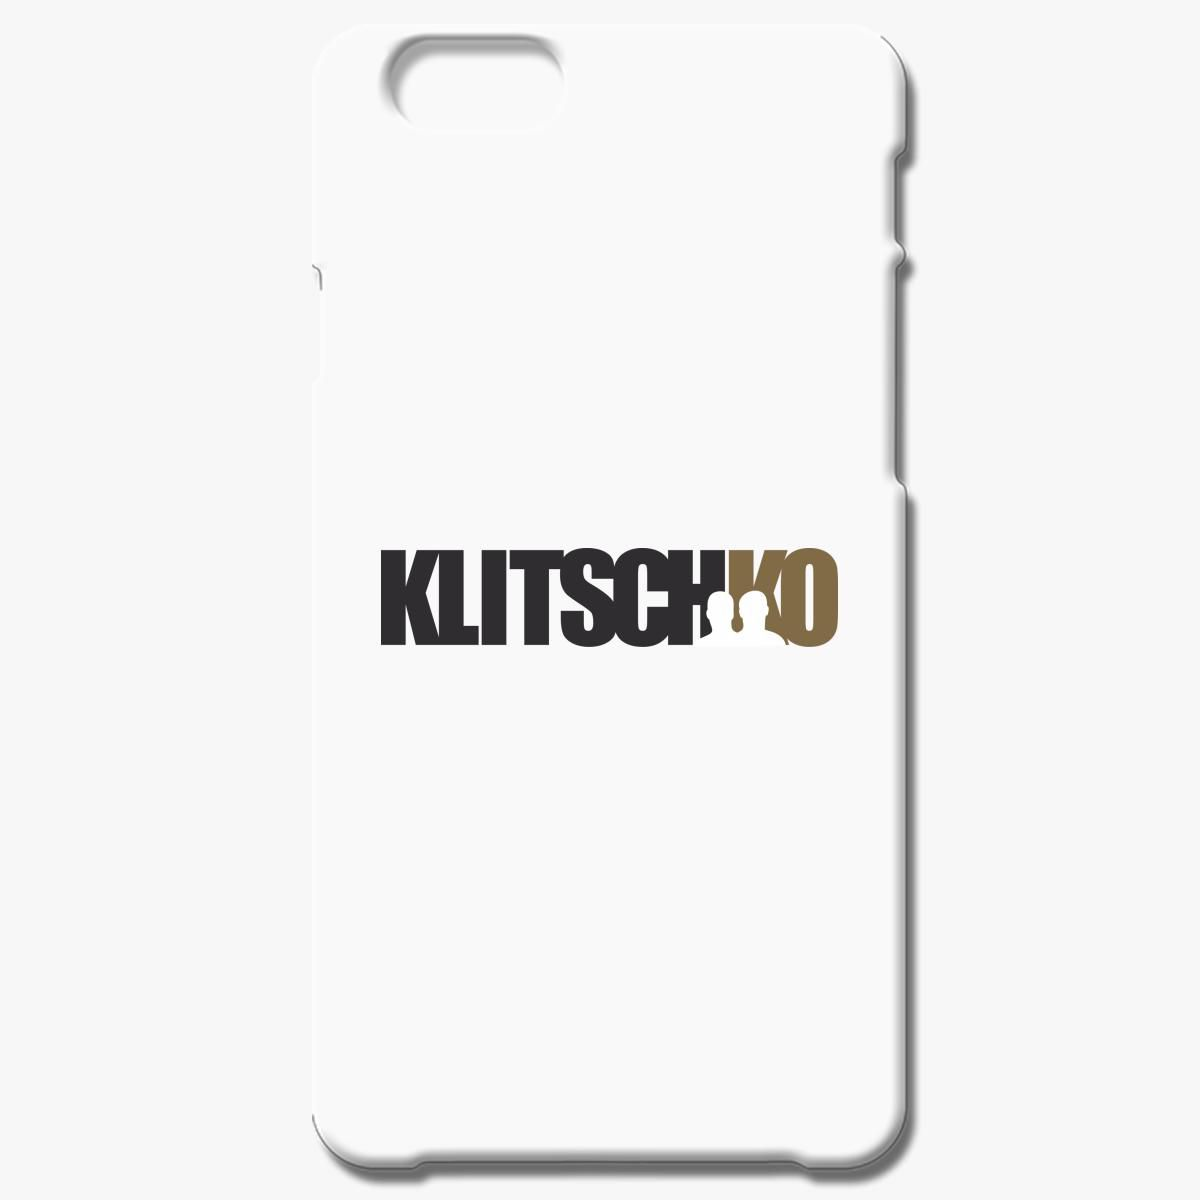 Witali And Wladimir Klitscko Iphone 6 6s Plus Case